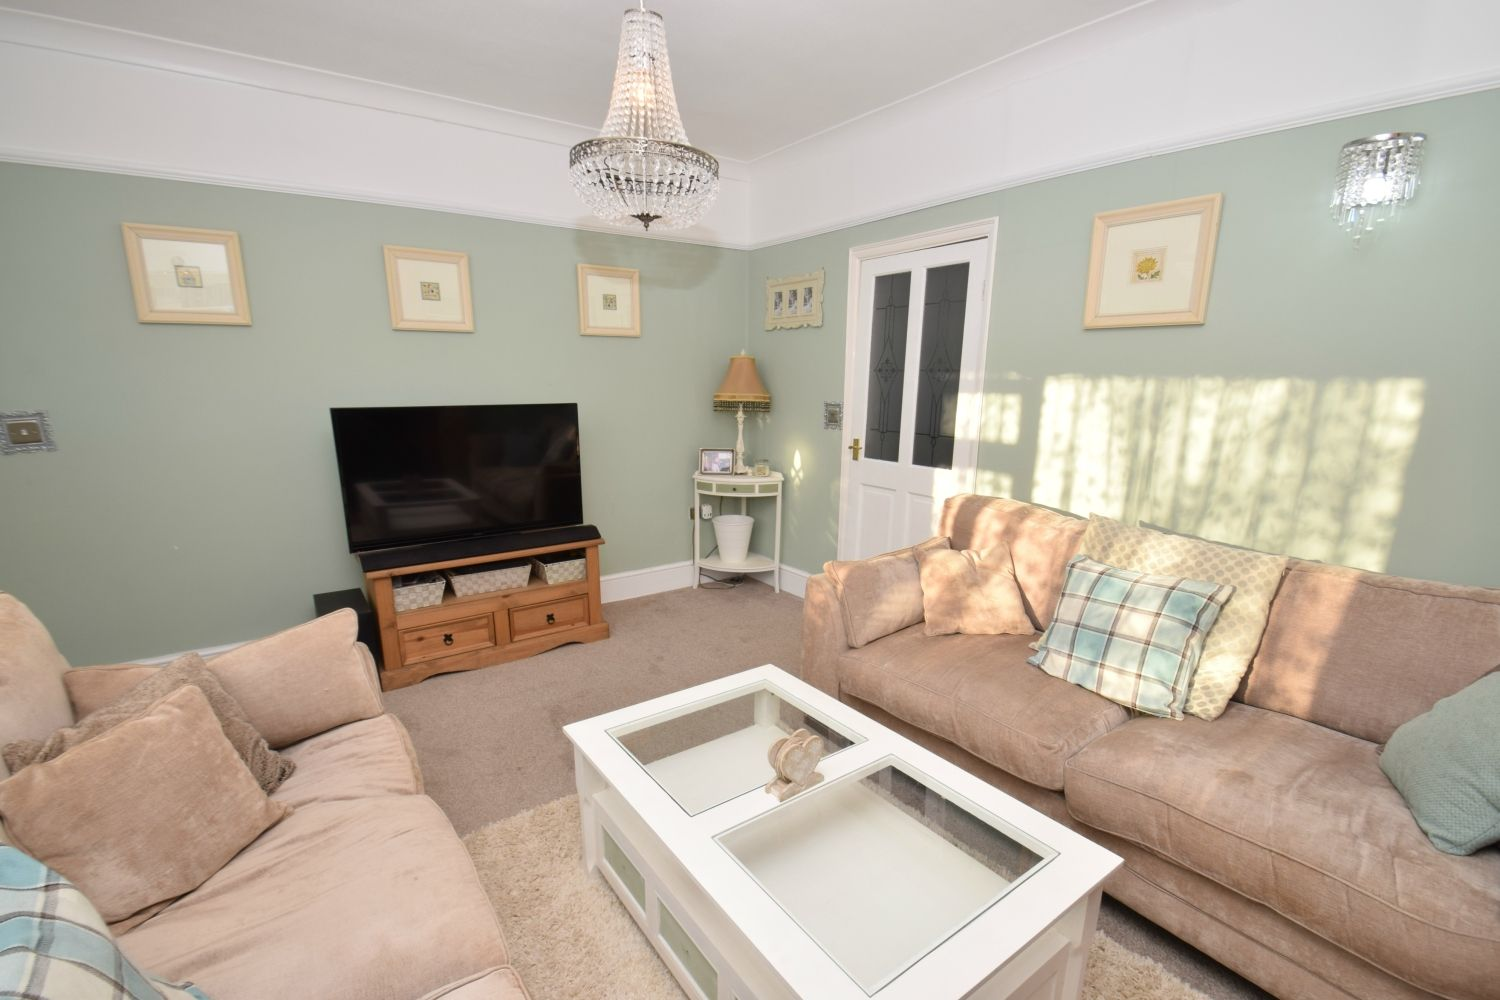 4 bed semi-detached for sale in Upland Grove, Bromsgrove, B61  - Property Image 4